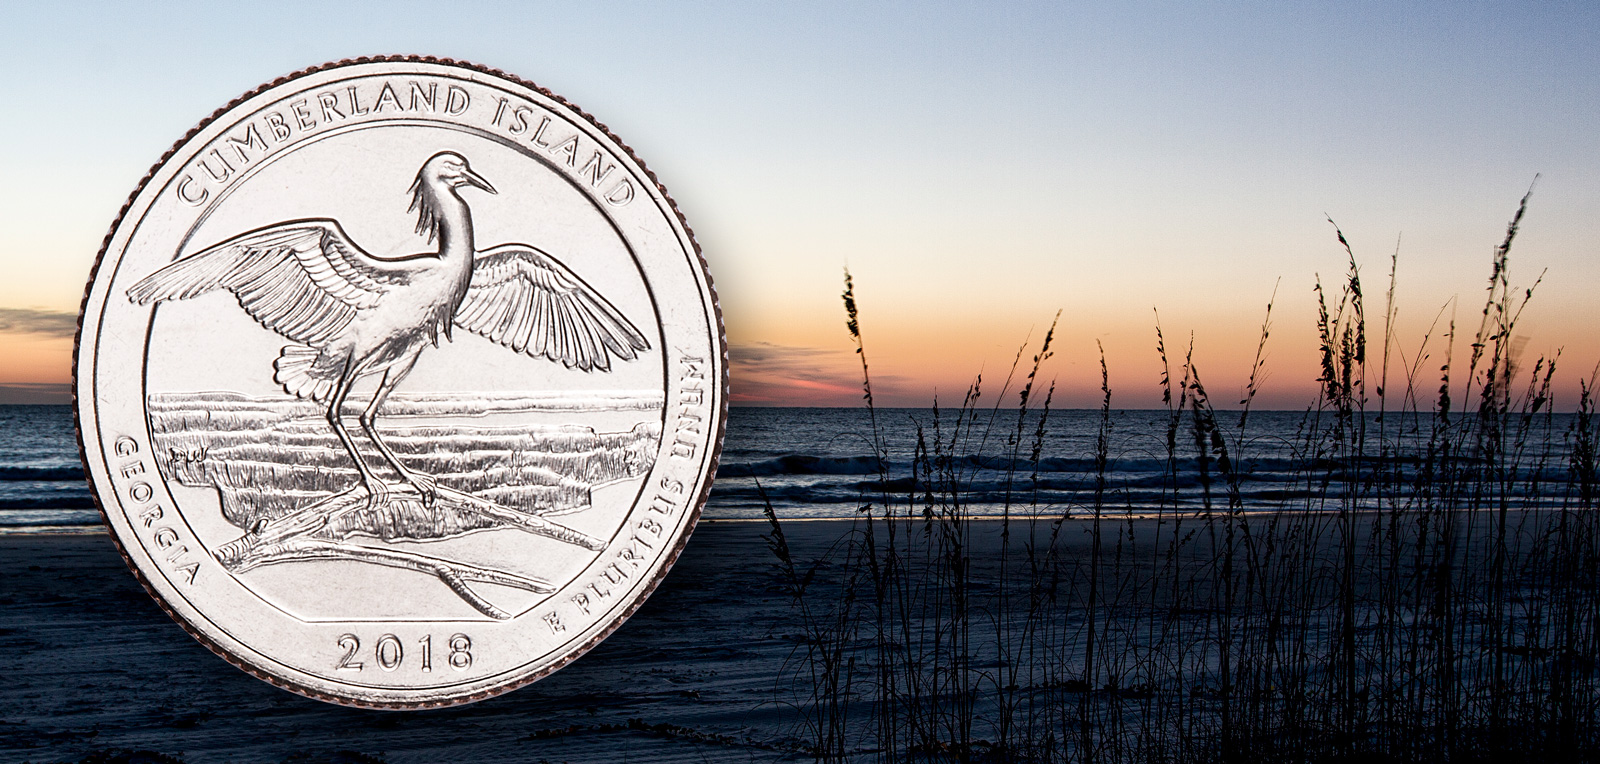 Cumberland Island National Seashore featured on 44th in National Park Quarter series